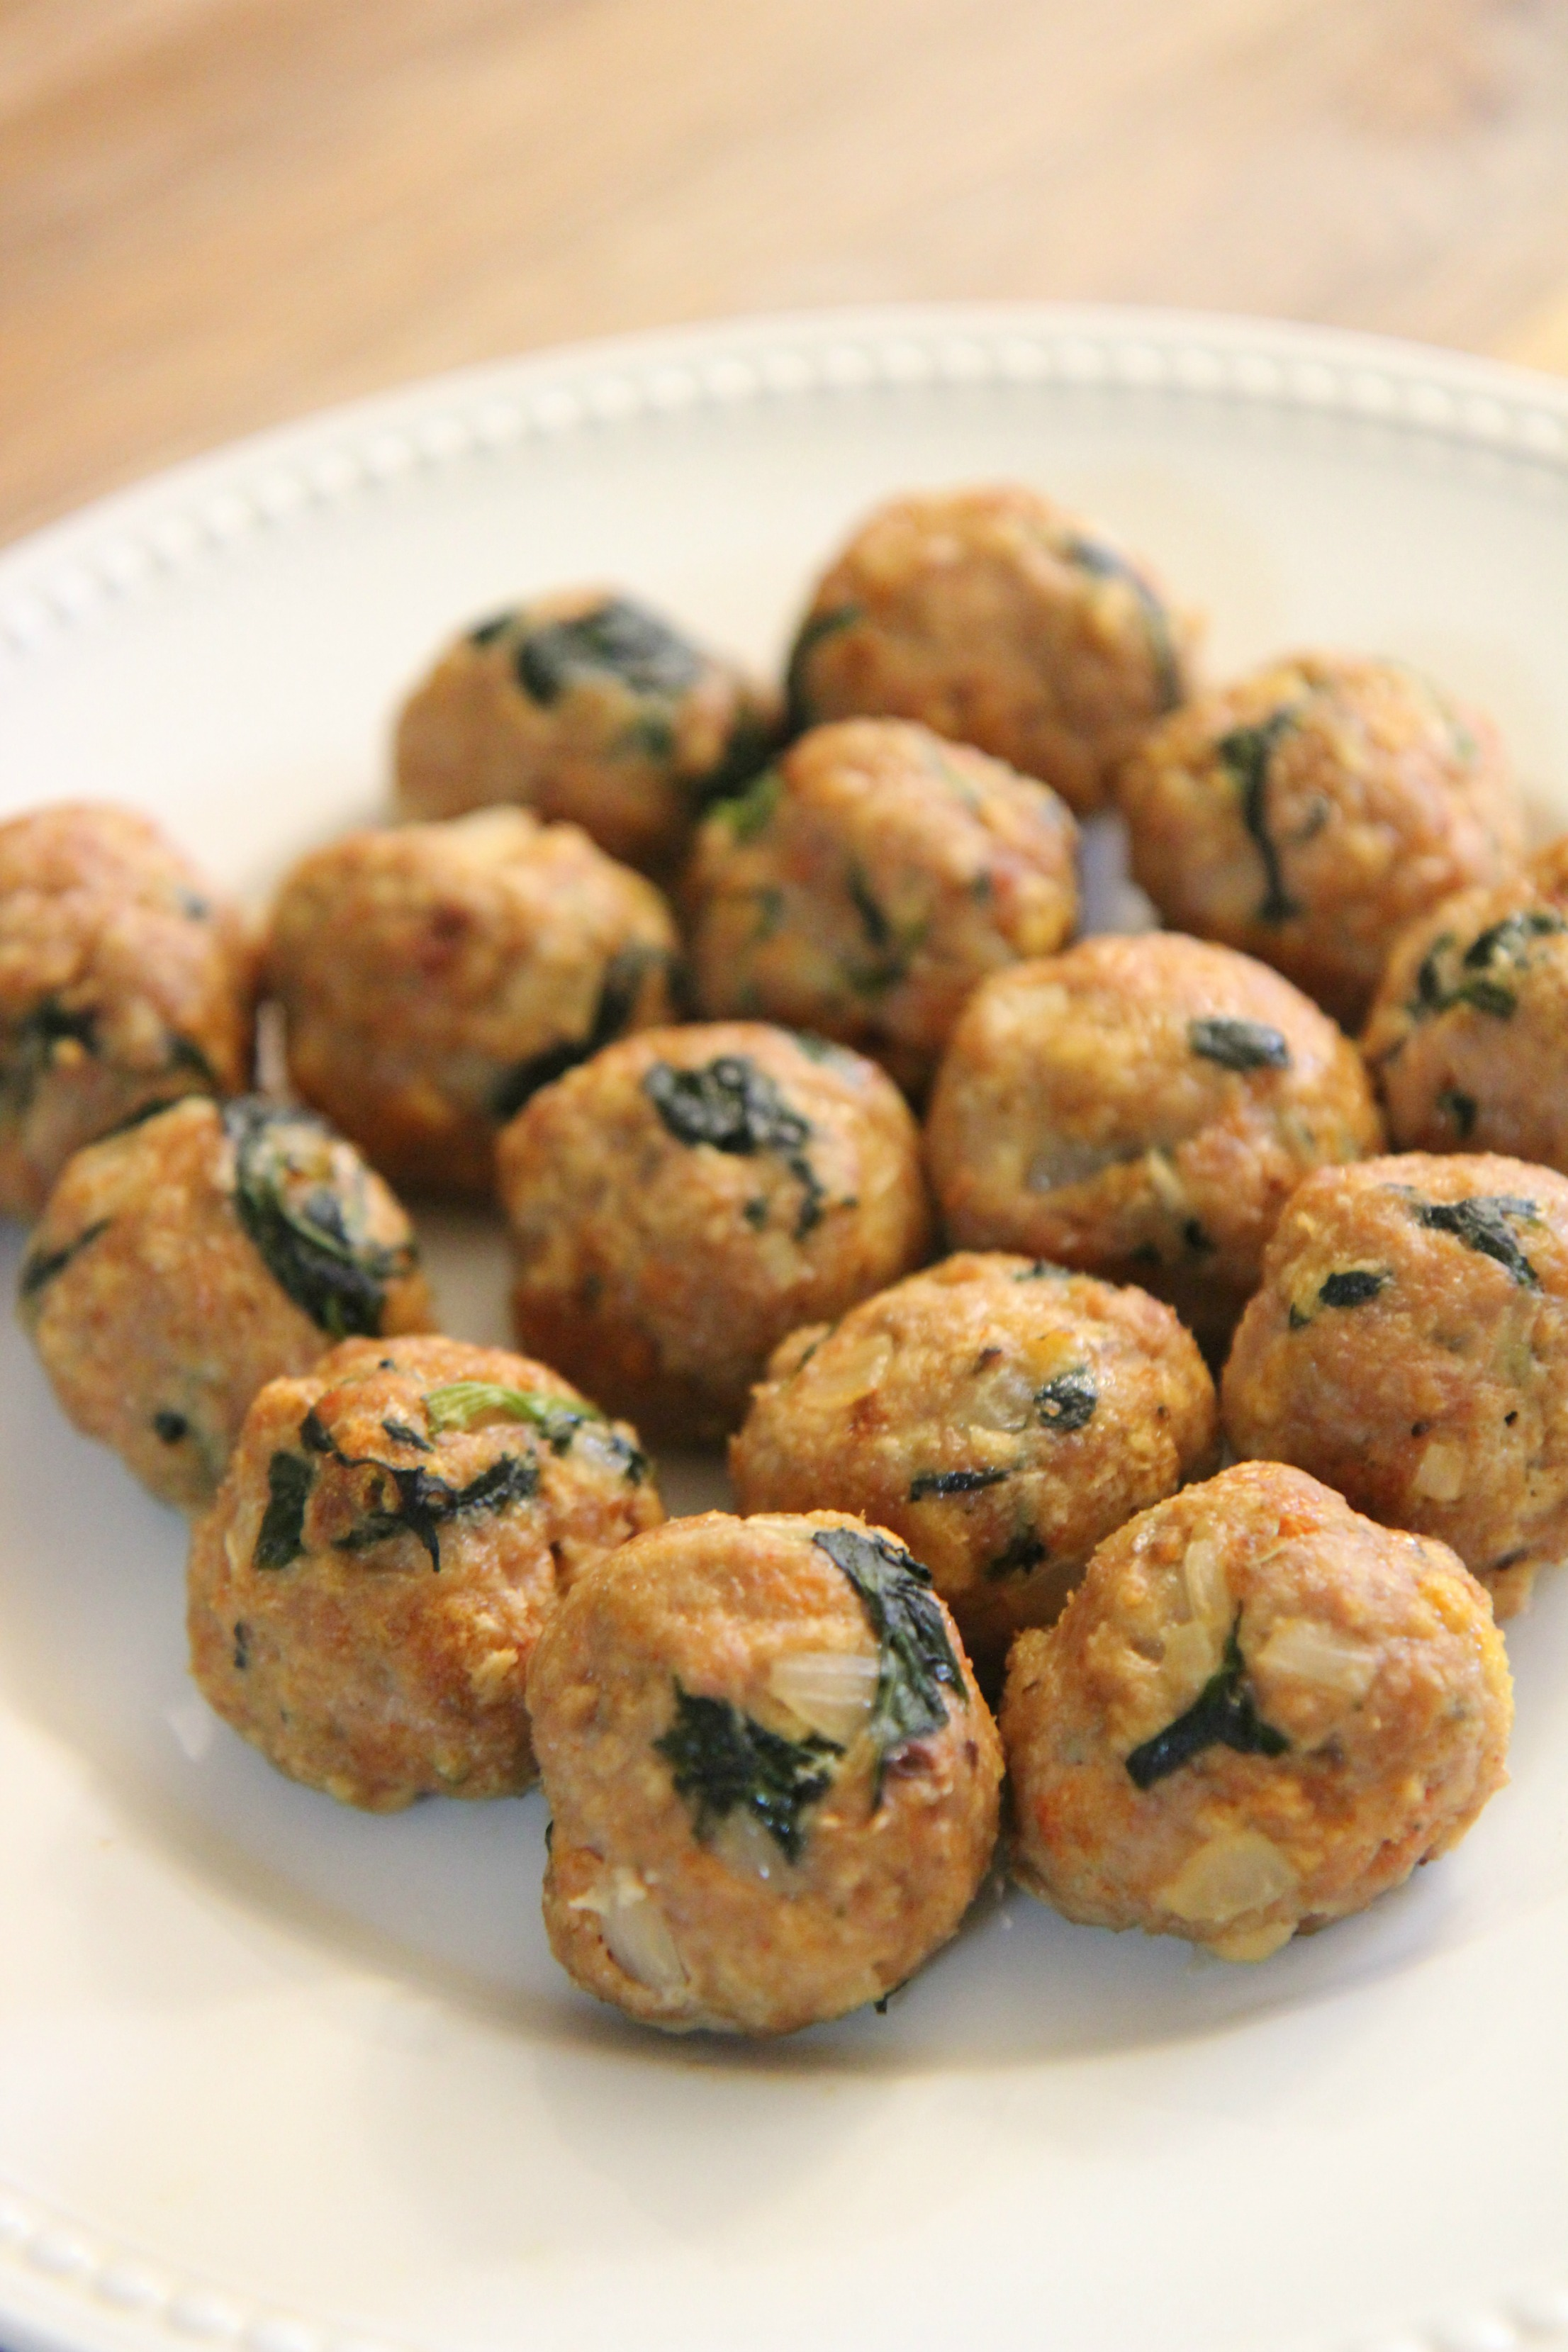 These spinach and turkey meatballs are moist and packed with spices and onions